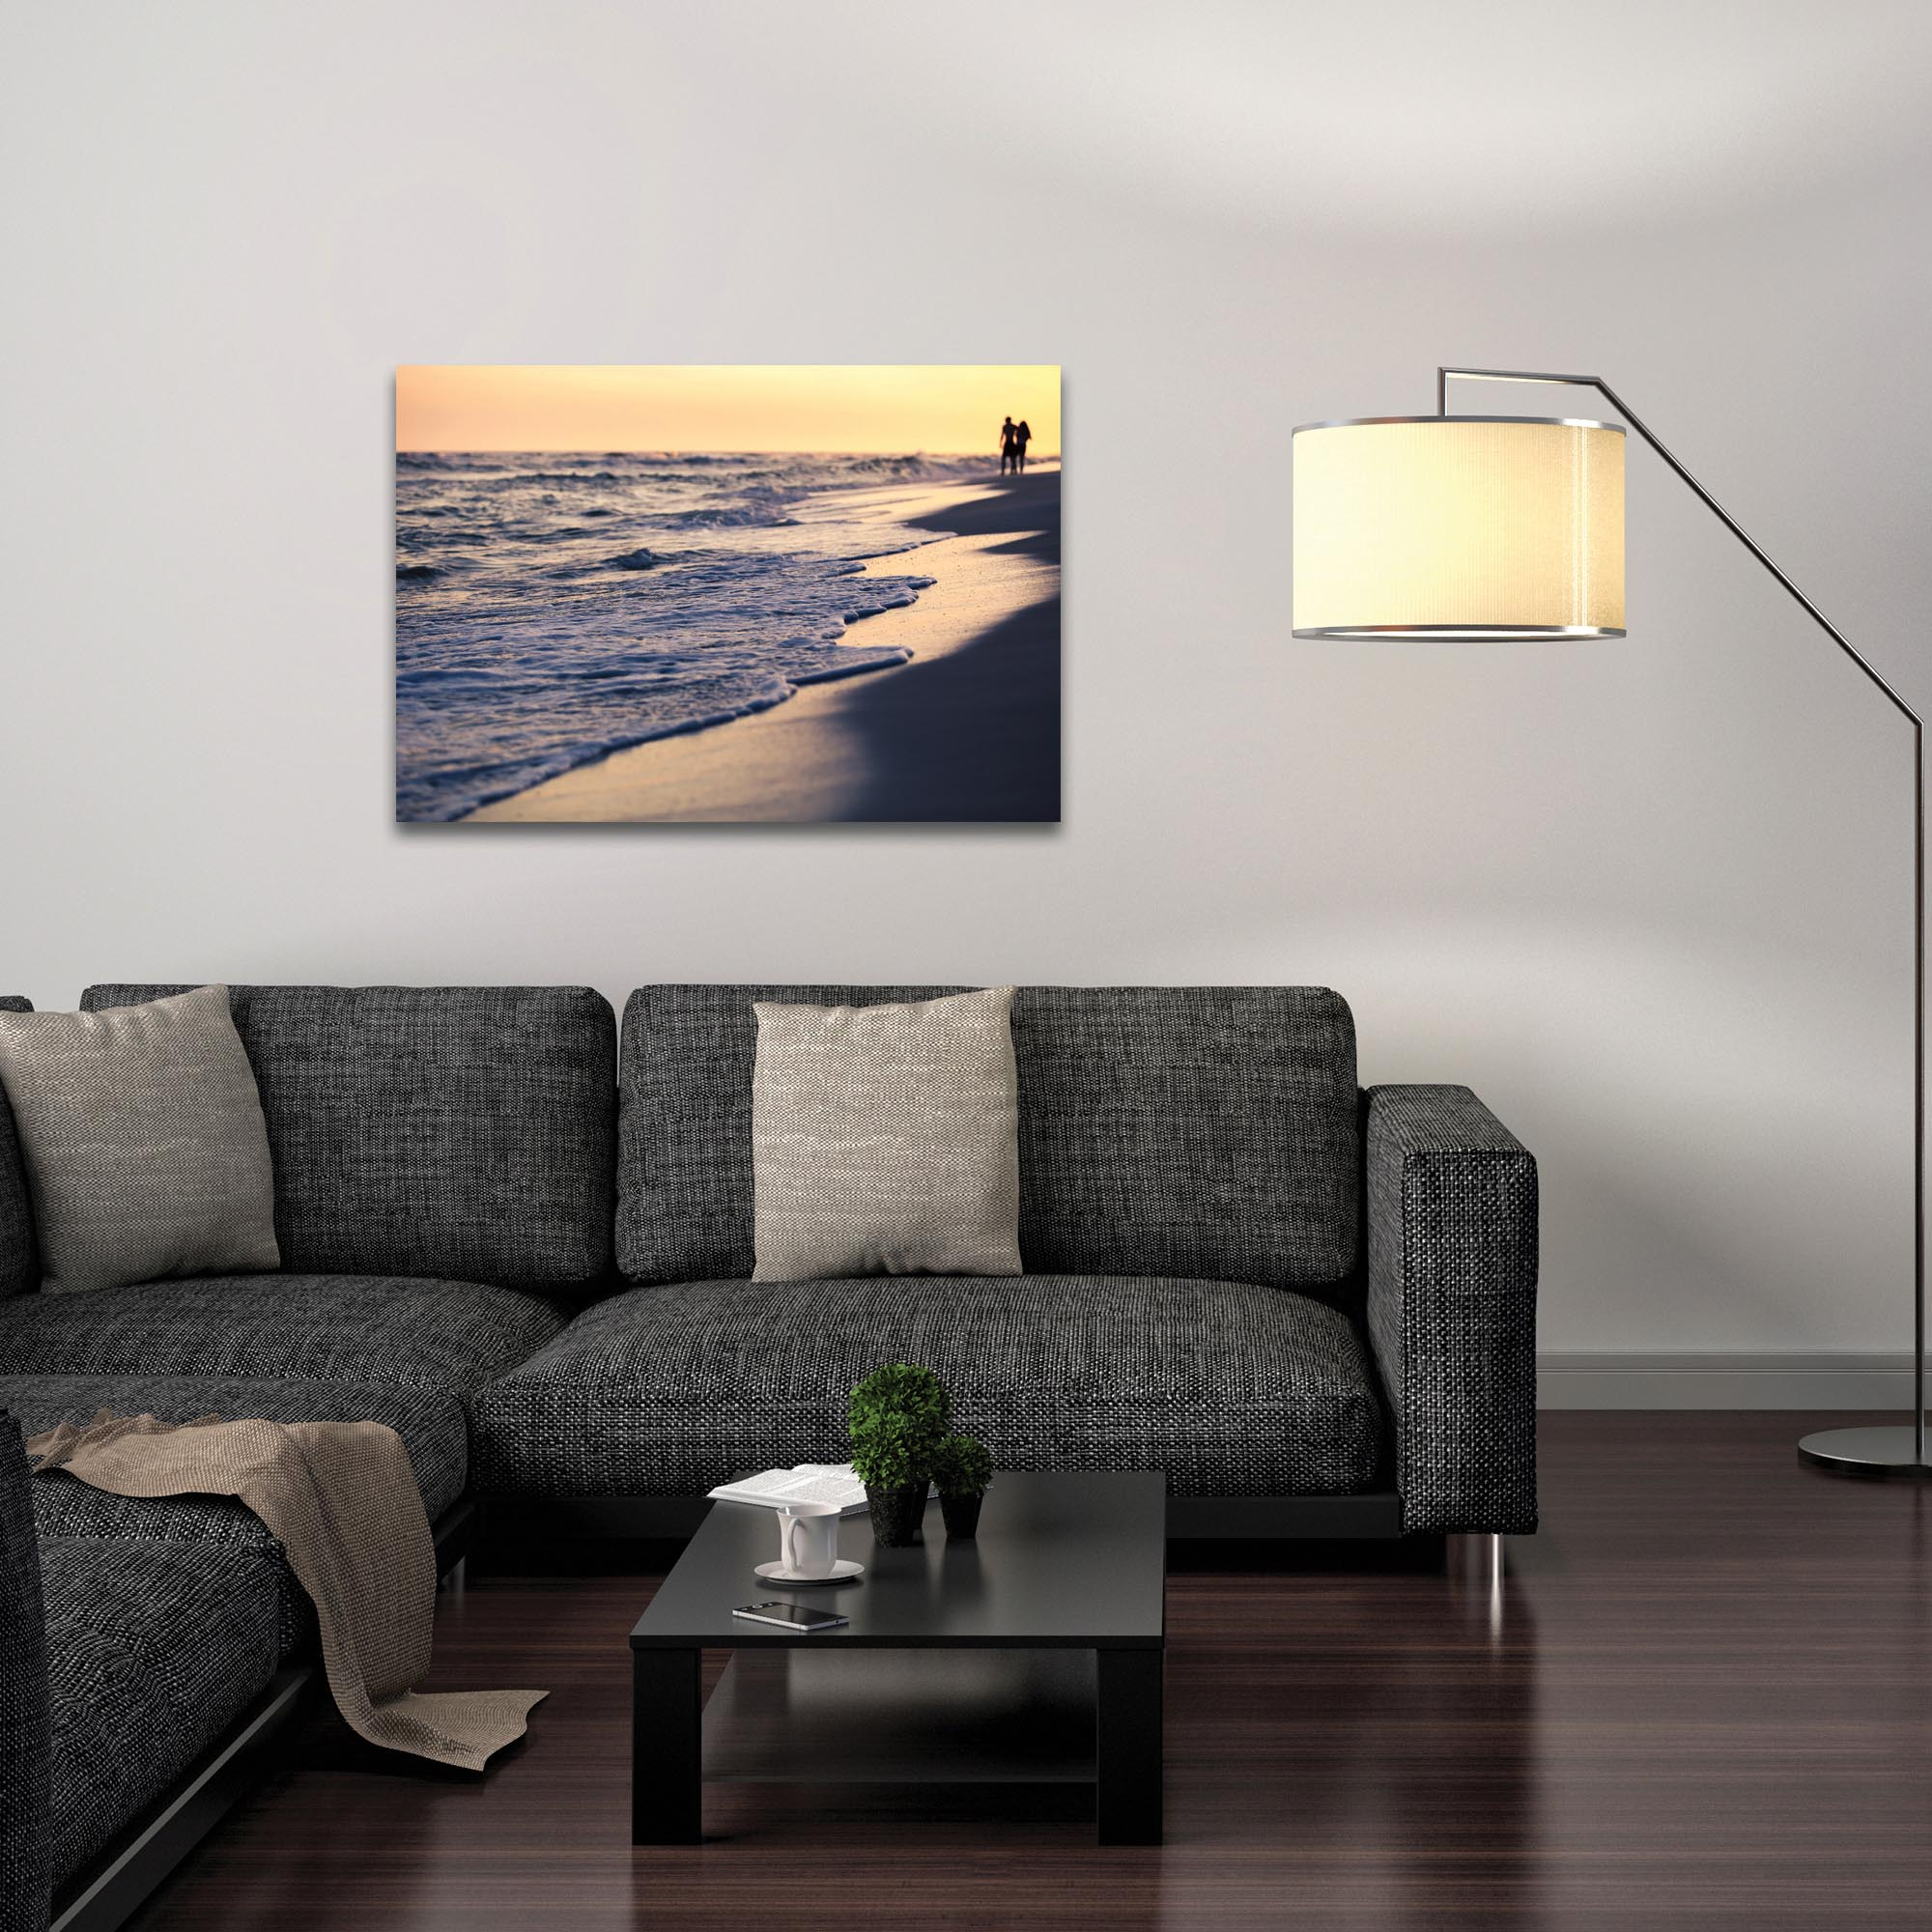 Coastal Wall Art 'Beach Stroll' - Beach Sunset Decor on Metal or Plexiglass - Lifestyle View